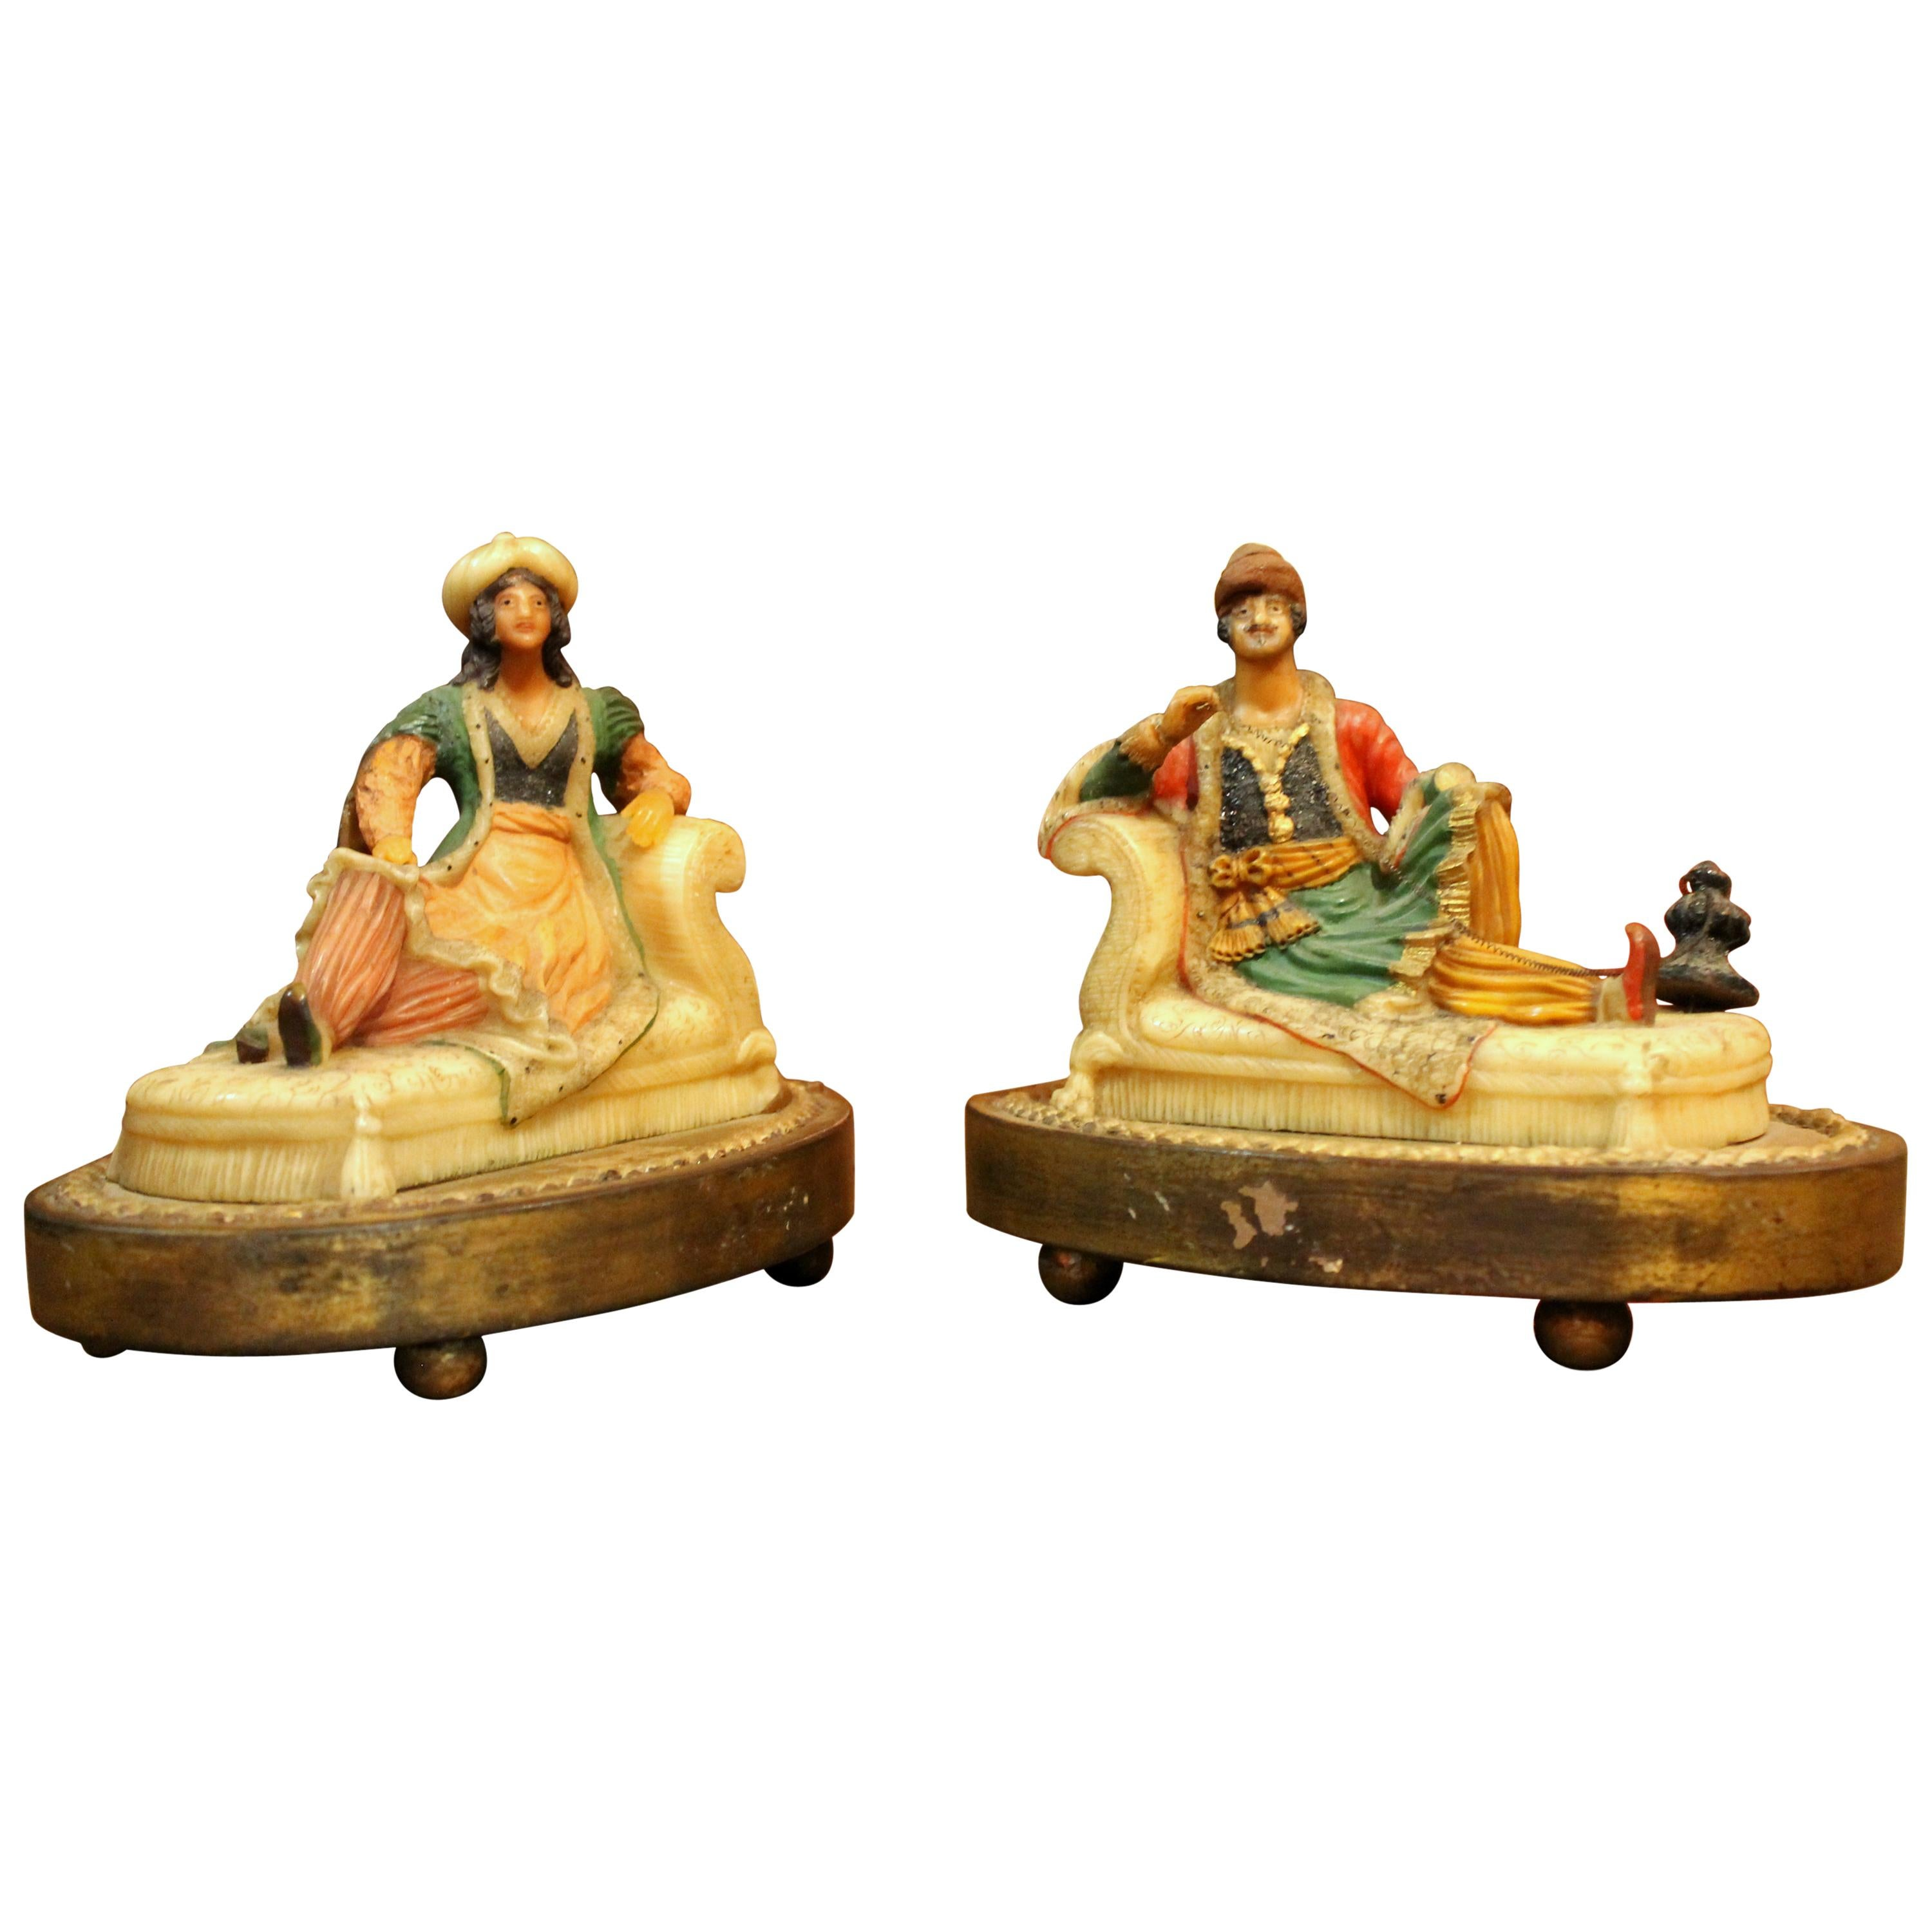 19th Century French Orientalist Polychrome Wax Sculptures on Giltwood Base